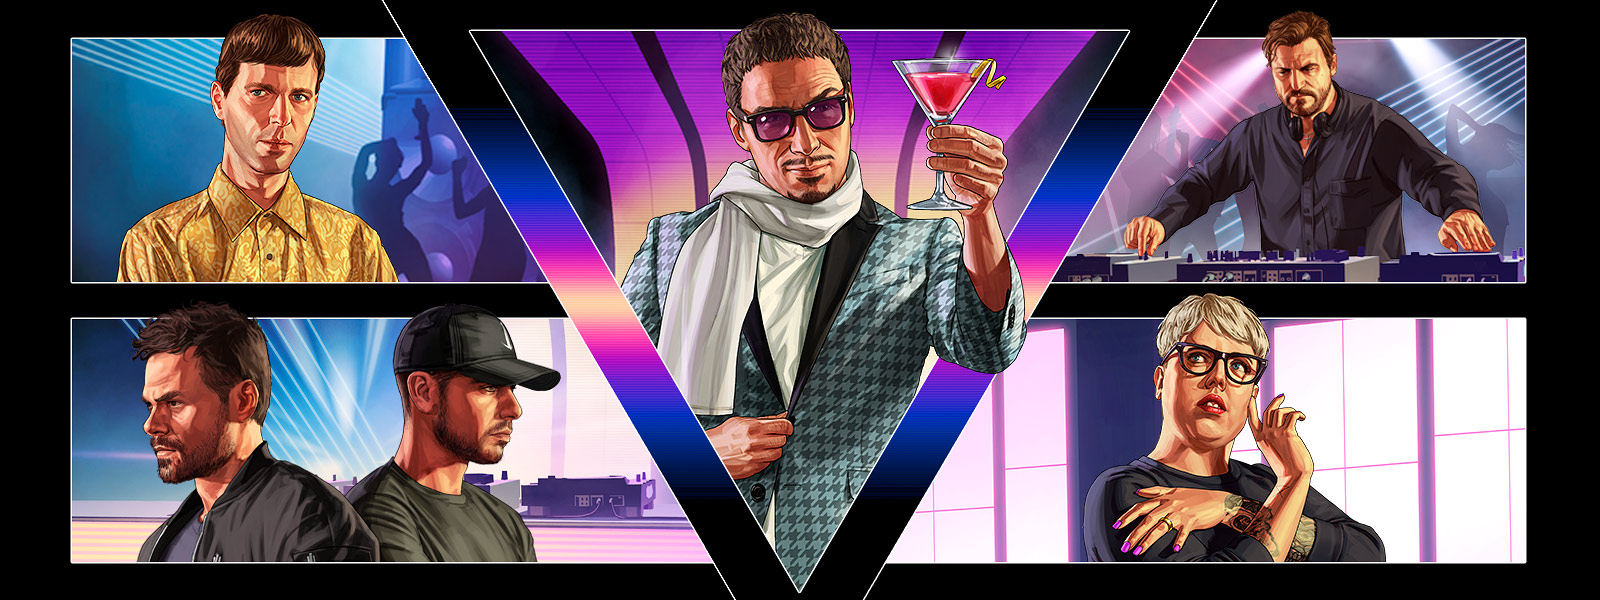 Grand Theft Auto Online After Hours, collage van meerdere personages in een nachtclub